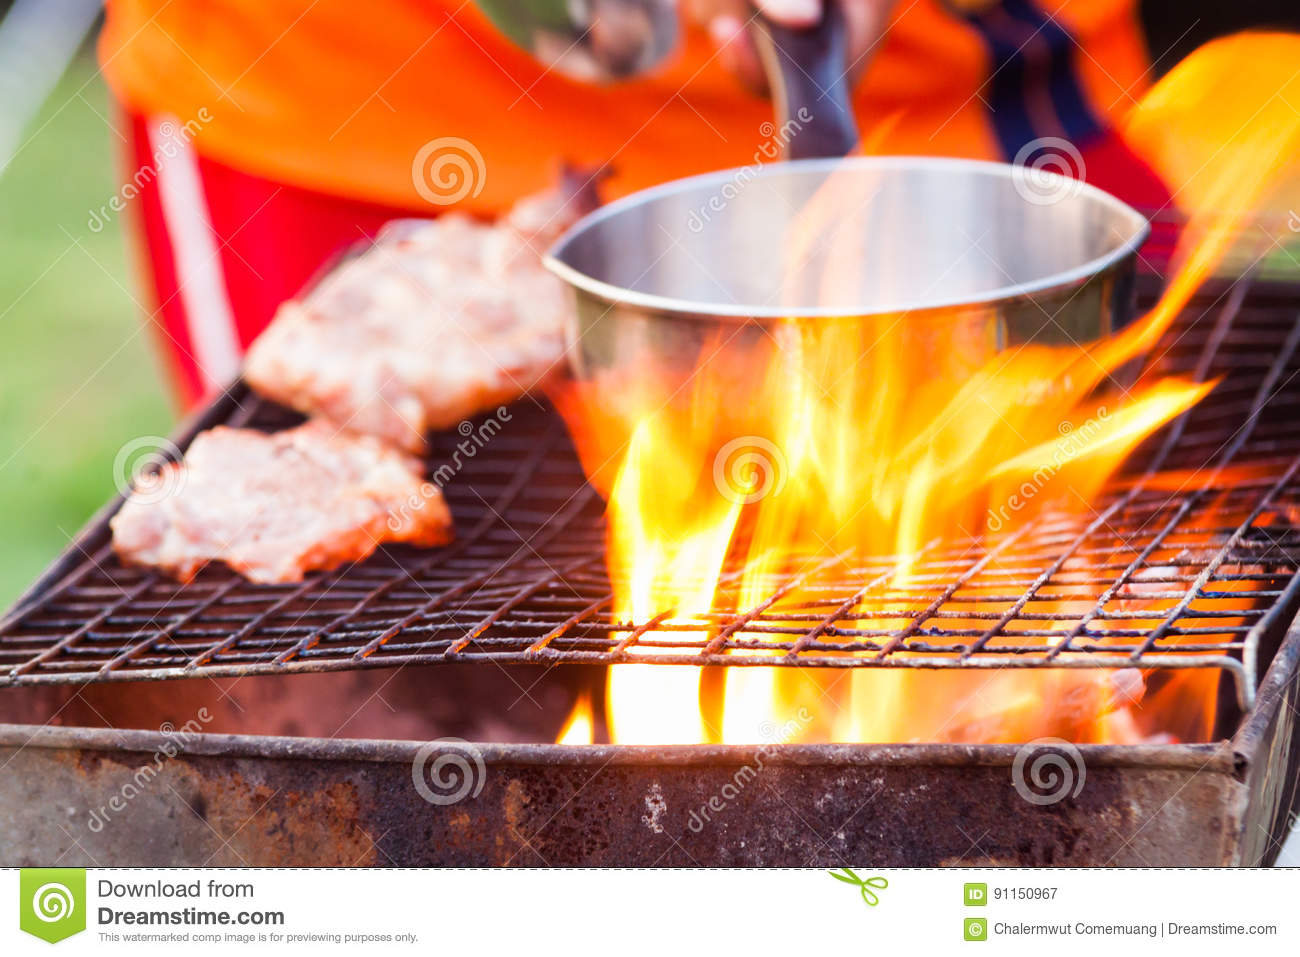 Barbecue in a simple way in wild, collect stones as grill